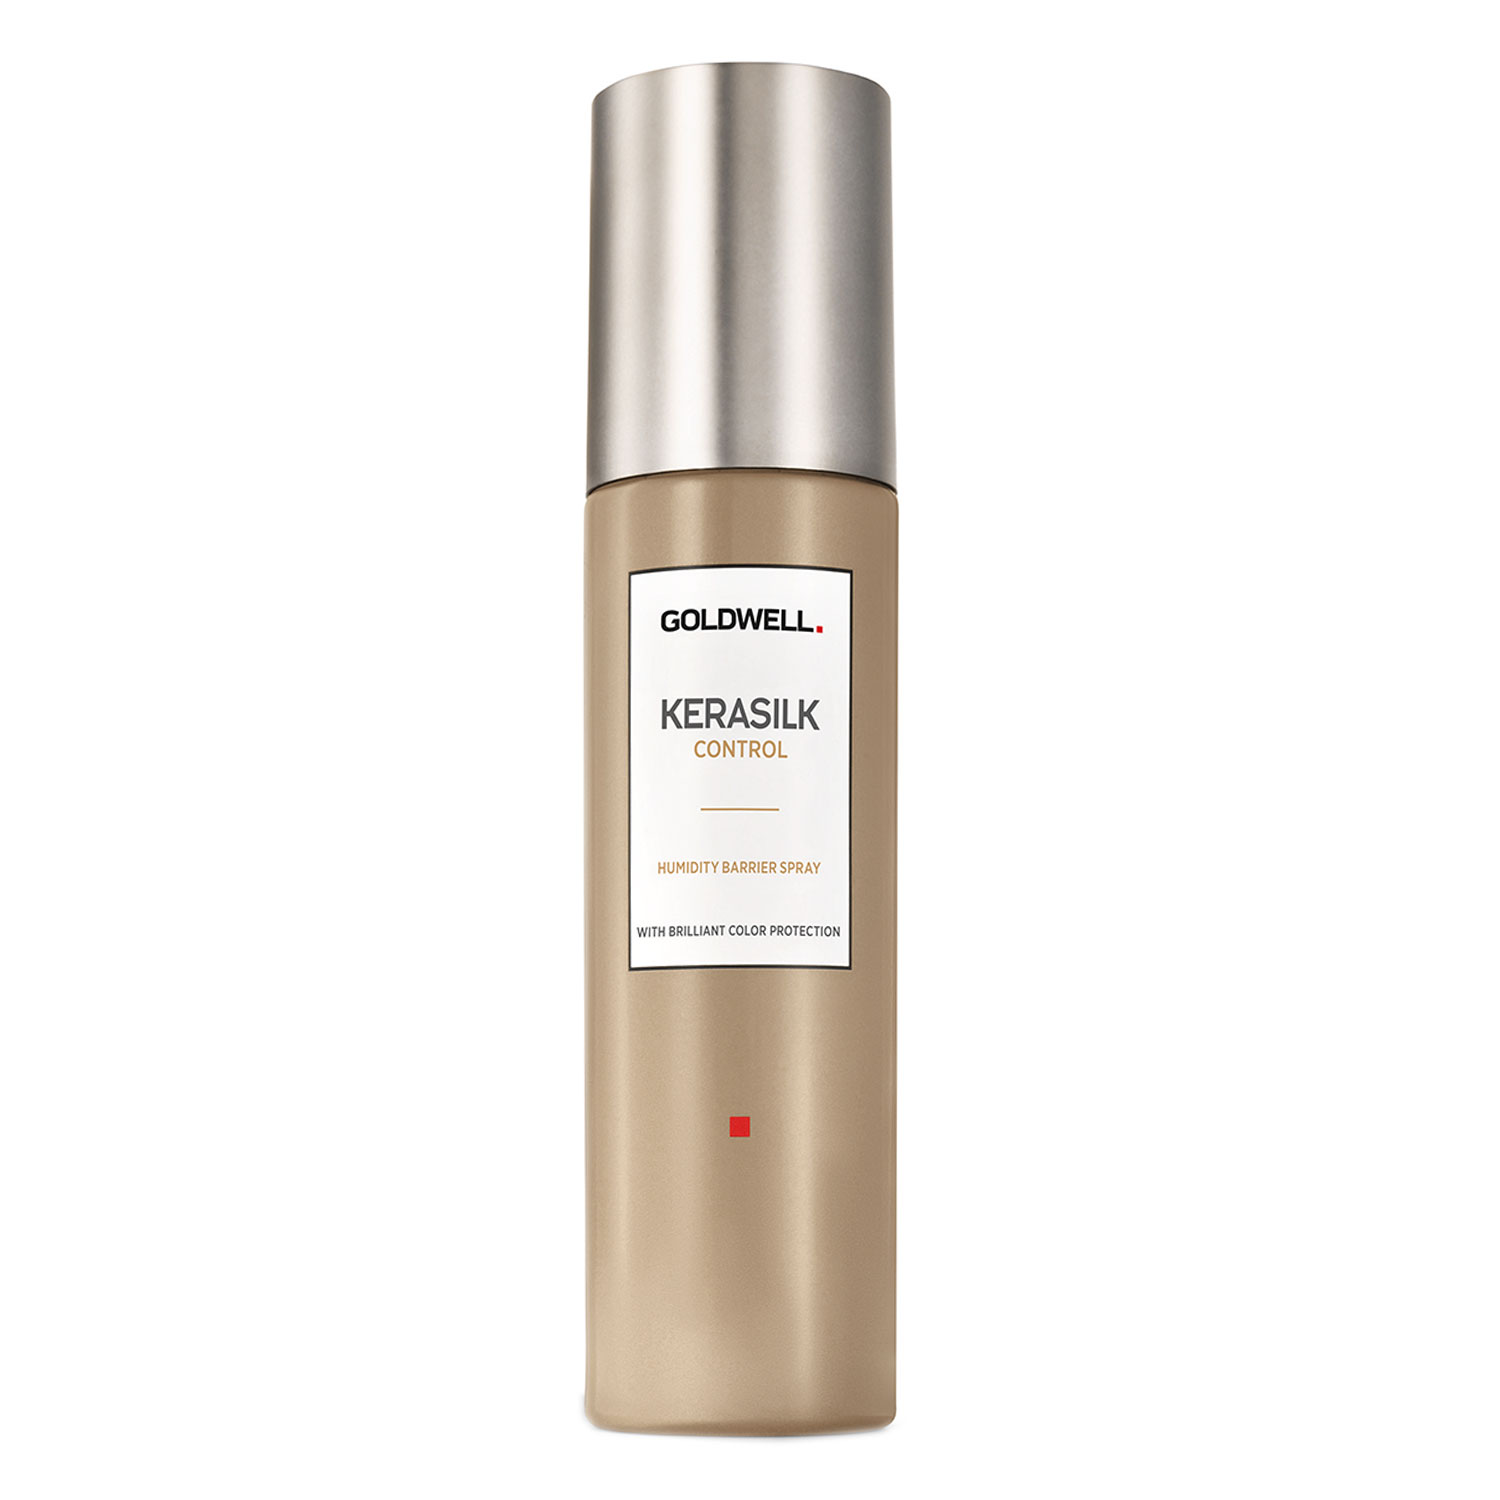 kerasilk control humidity barrier spray goldwell. Black Bedroom Furniture Sets. Home Design Ideas